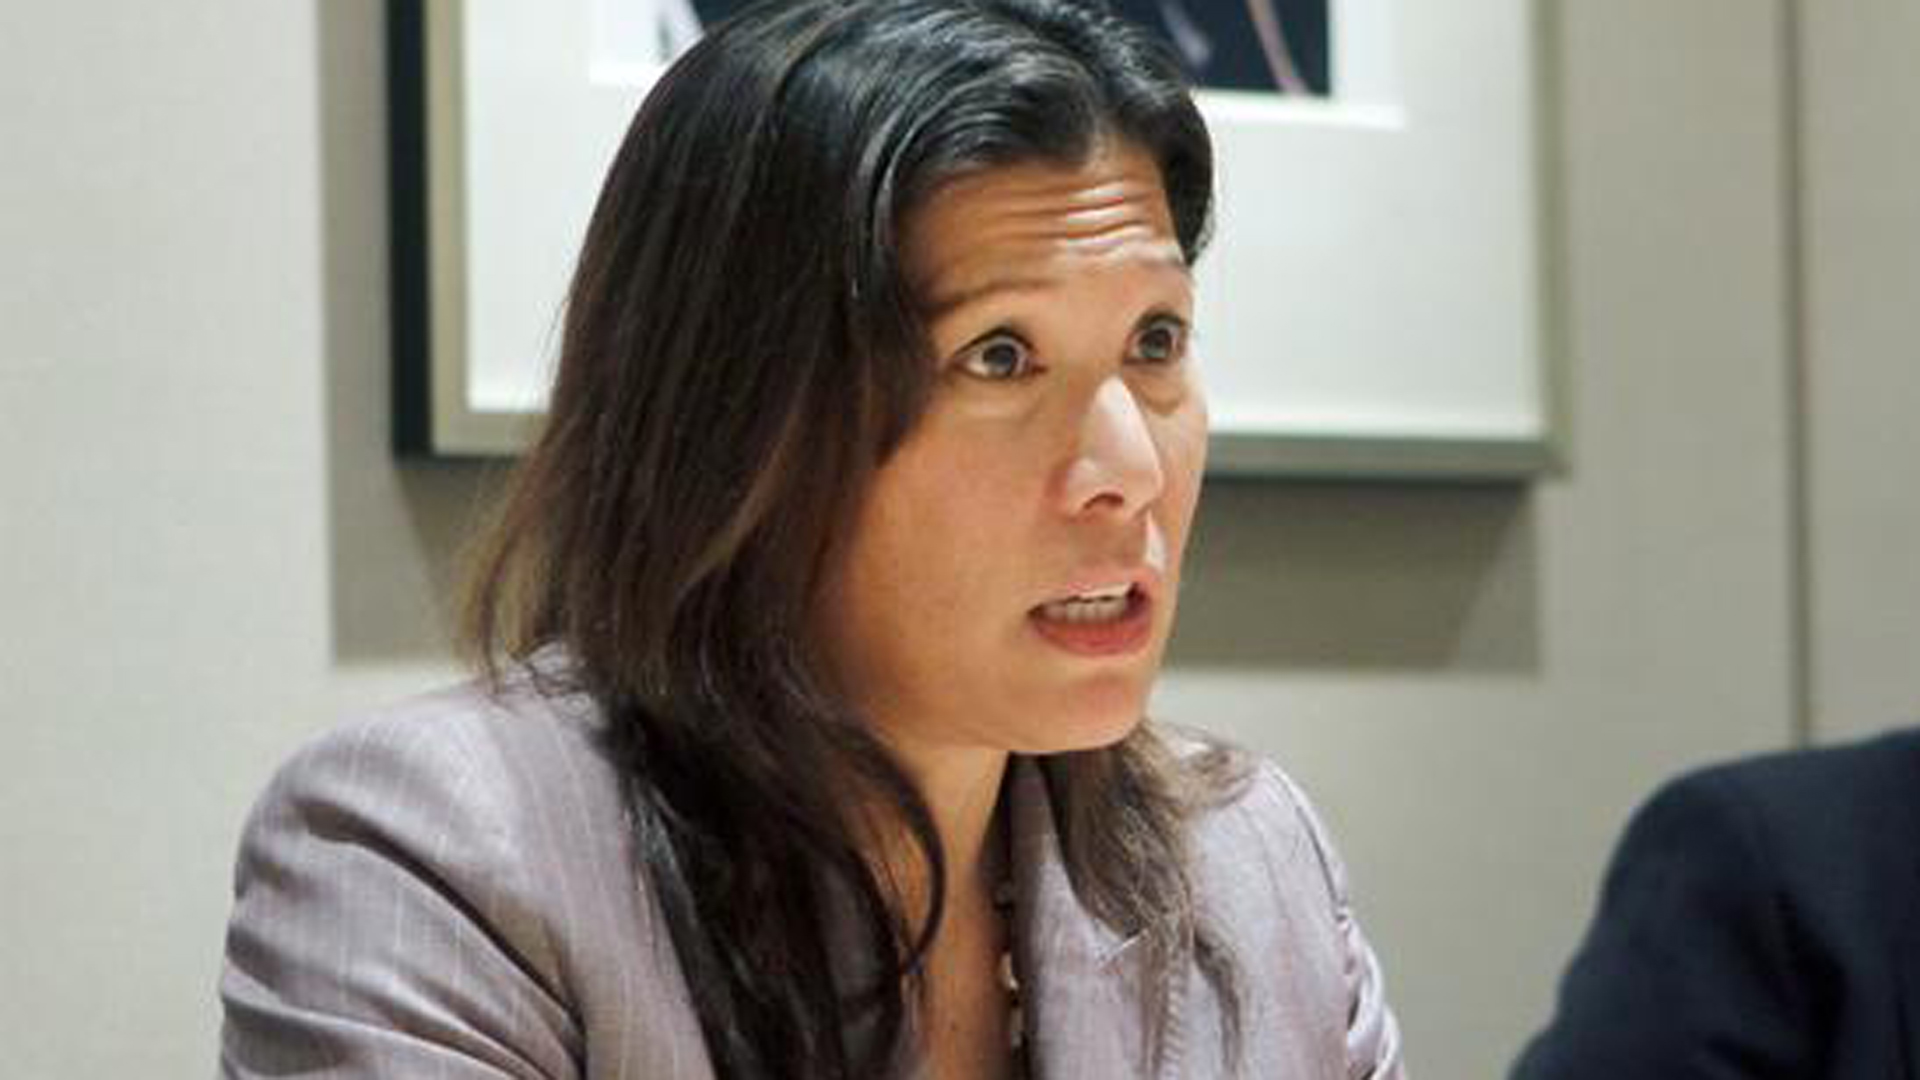 Chief Justice Tani Cantil-Sakauye appears in an undated photo. (Kirk McKoy / Los Angeles Times)